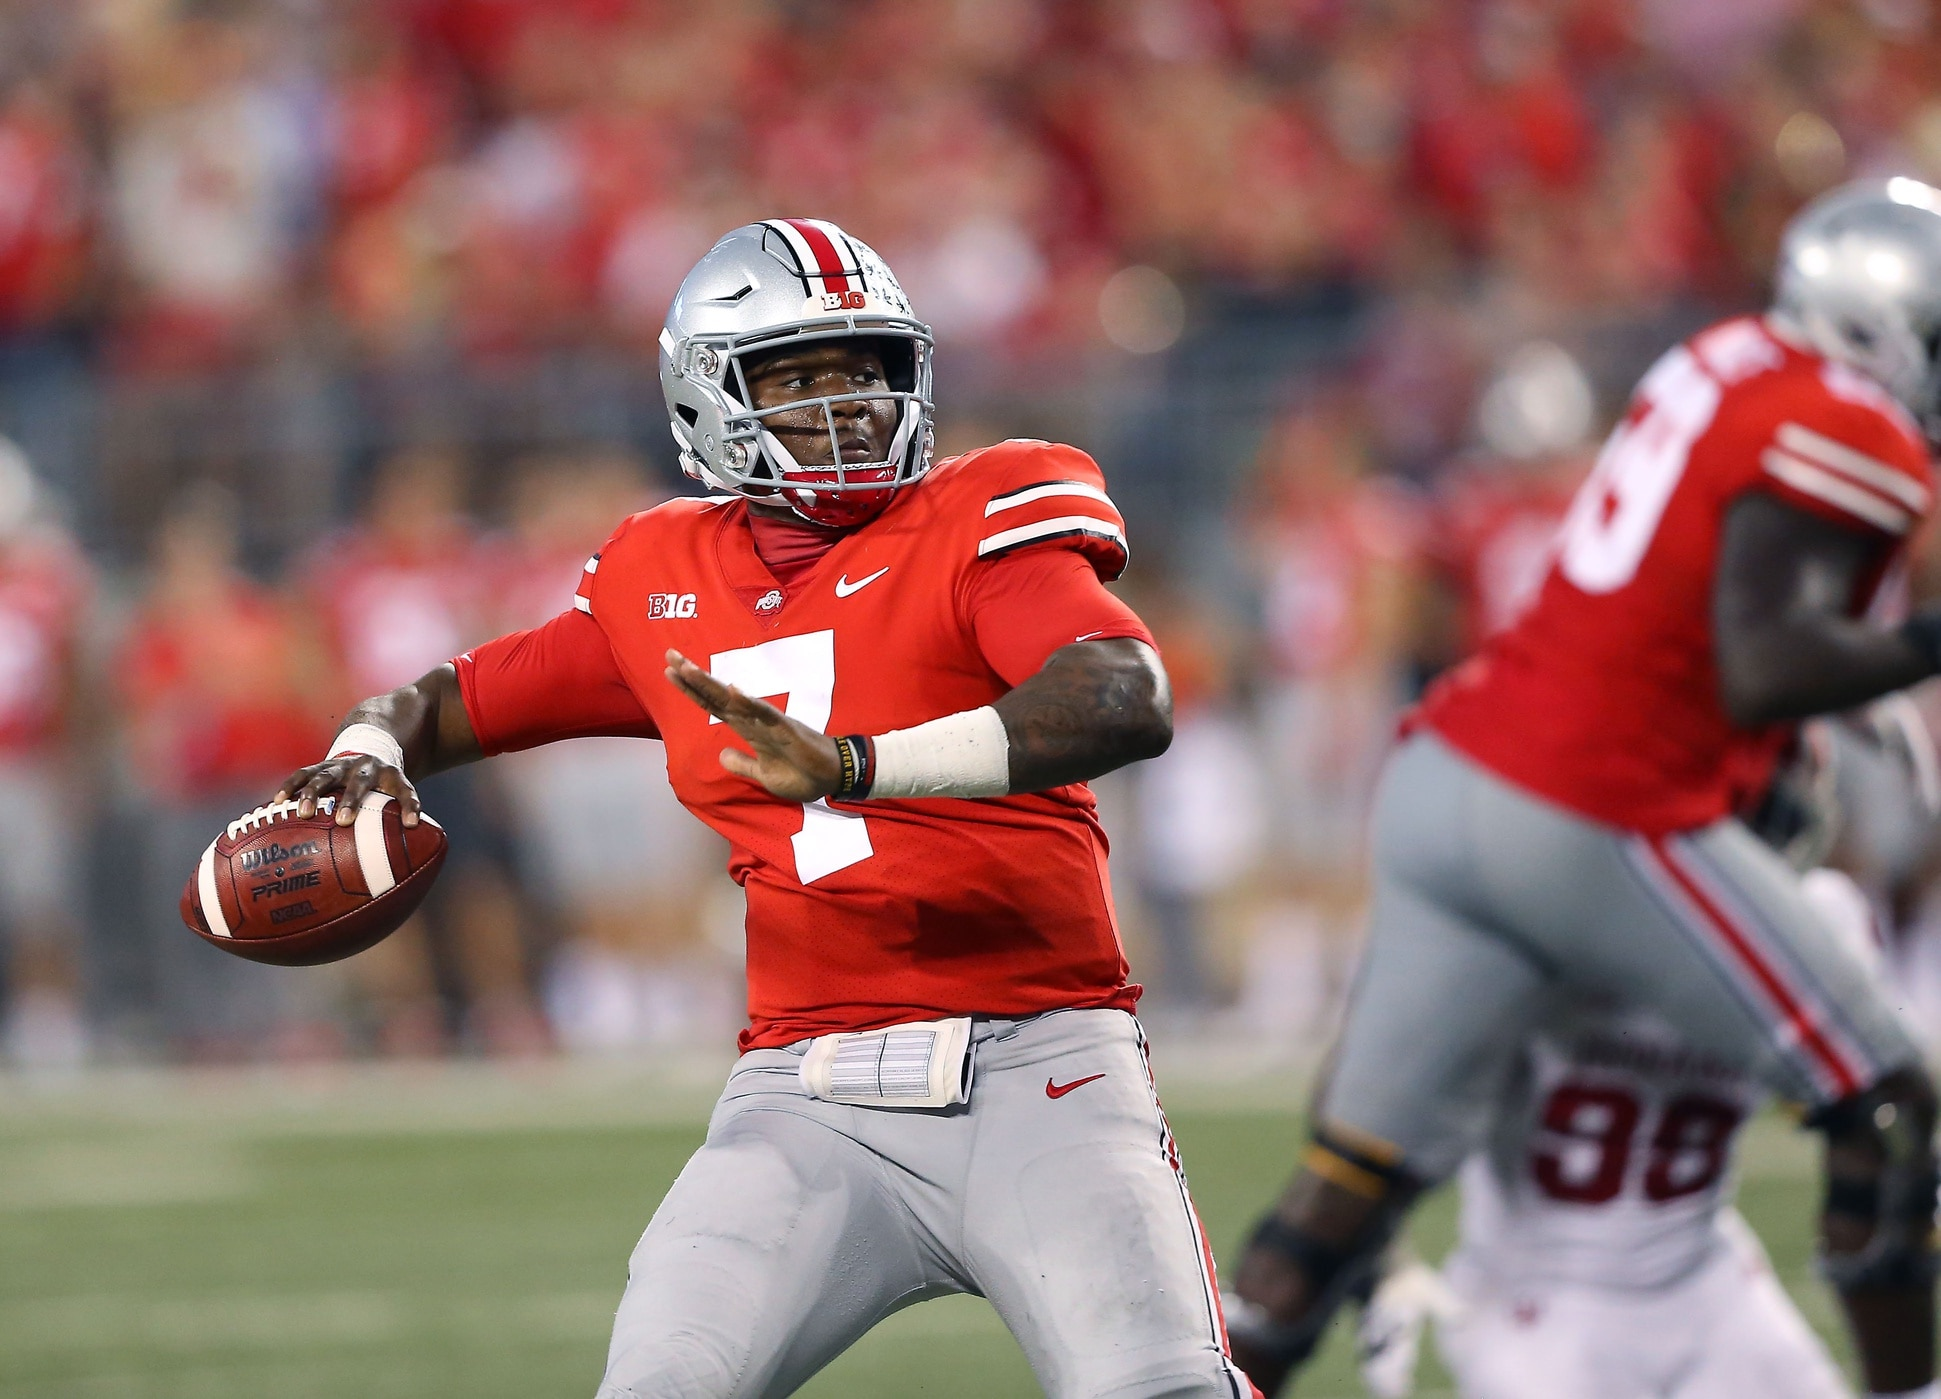 Raiders reportedly could take first-round QB, 'very high' on Dwayne Haskins